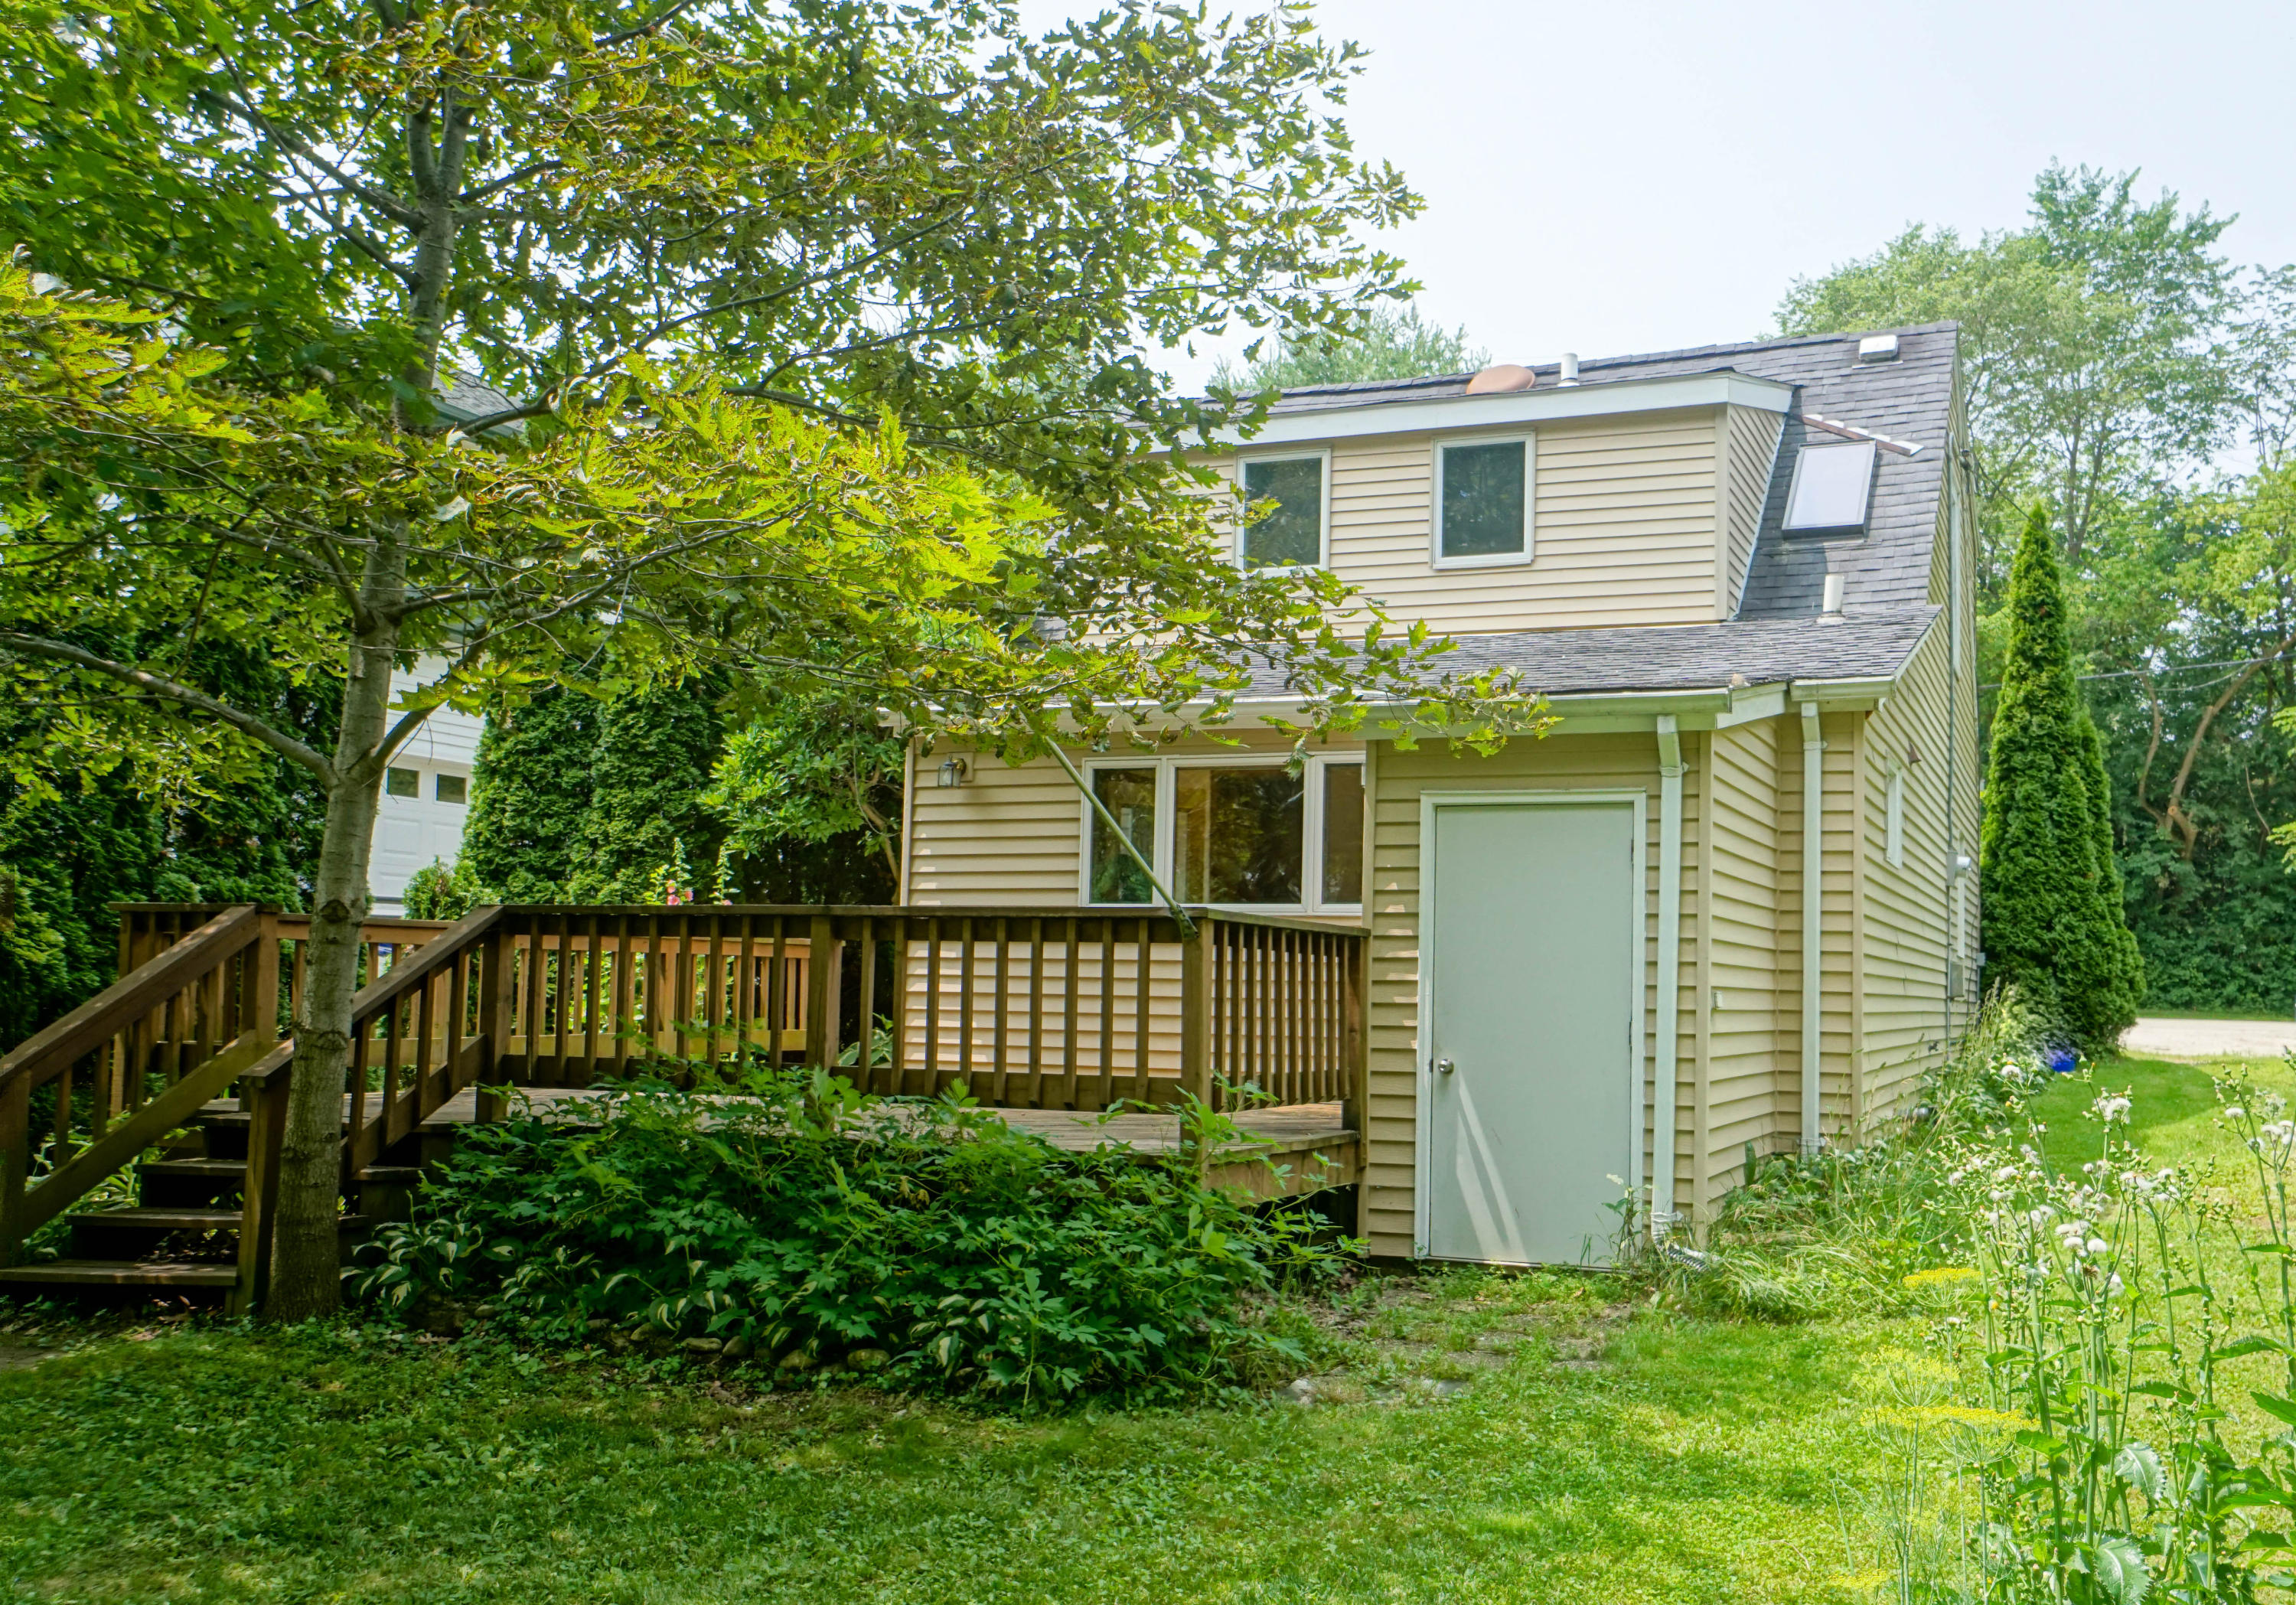 2640 Nagawicka Ave, Delafield, Wisconsin 53018, 2 Bedrooms Bedrooms, 6 Rooms Rooms,1 BathroomBathrooms,Single-Family,For Sale,Nagawicka Ave,1647144